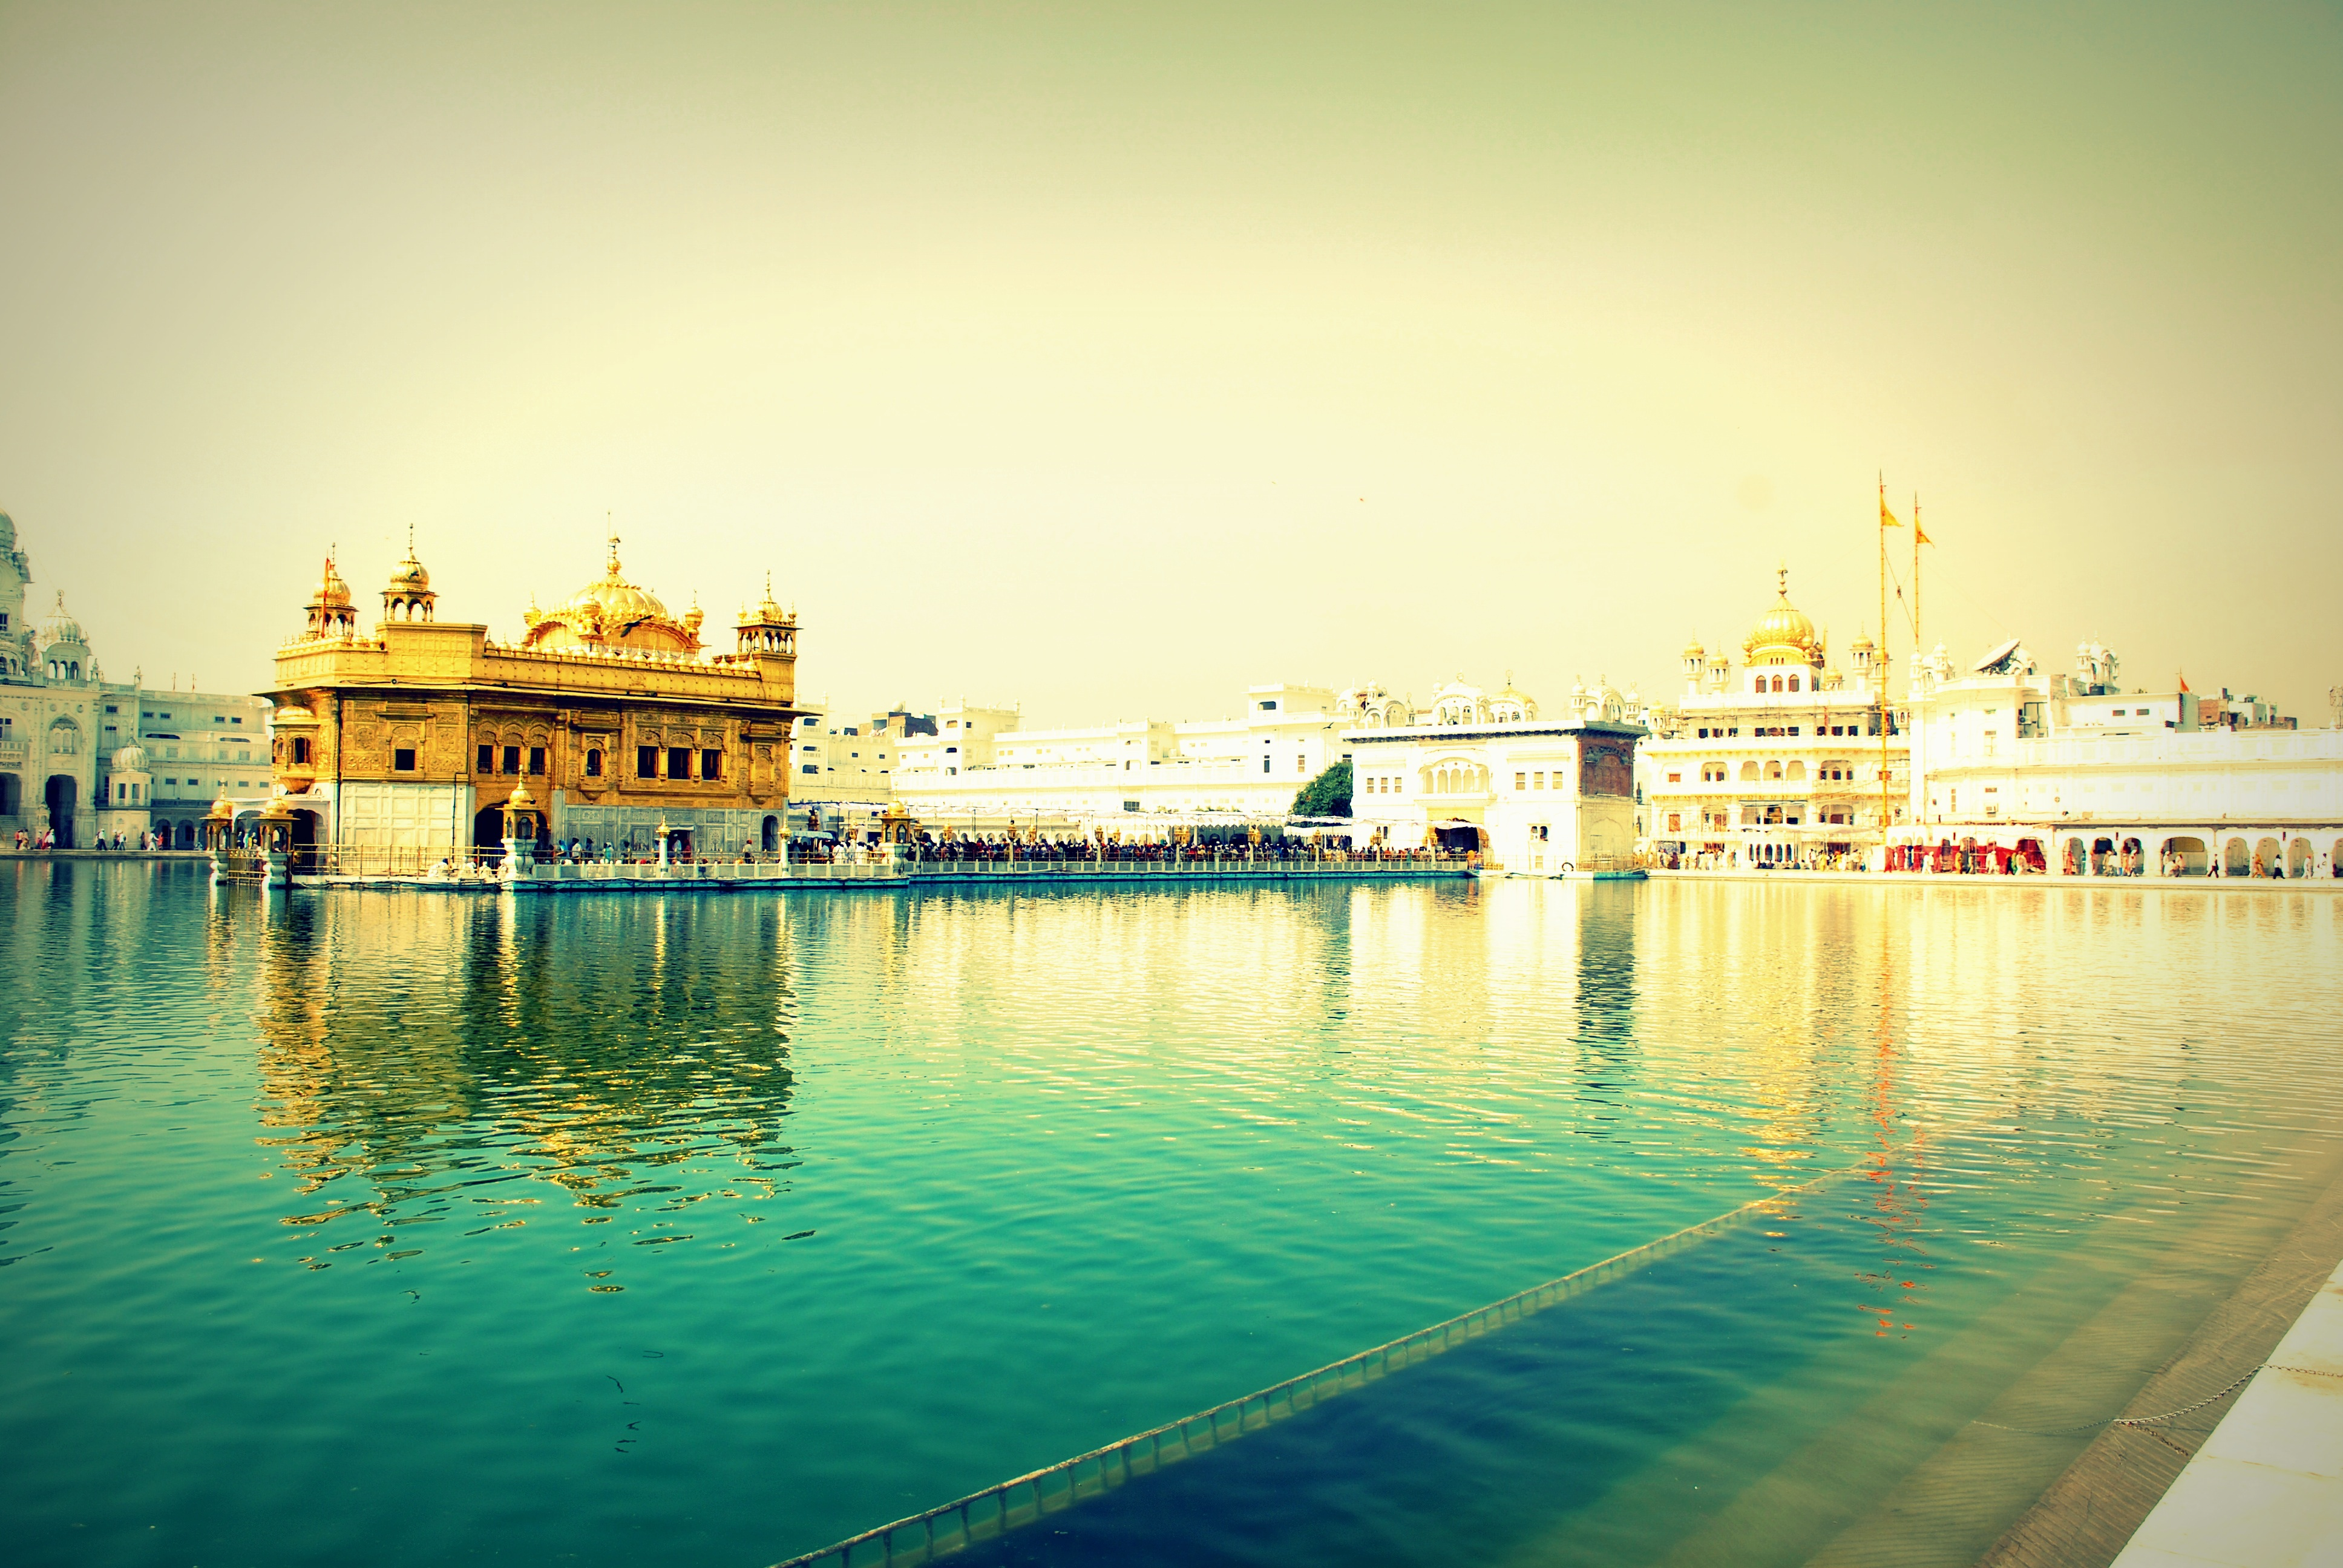 maa gita holidays » golden temple amritsar